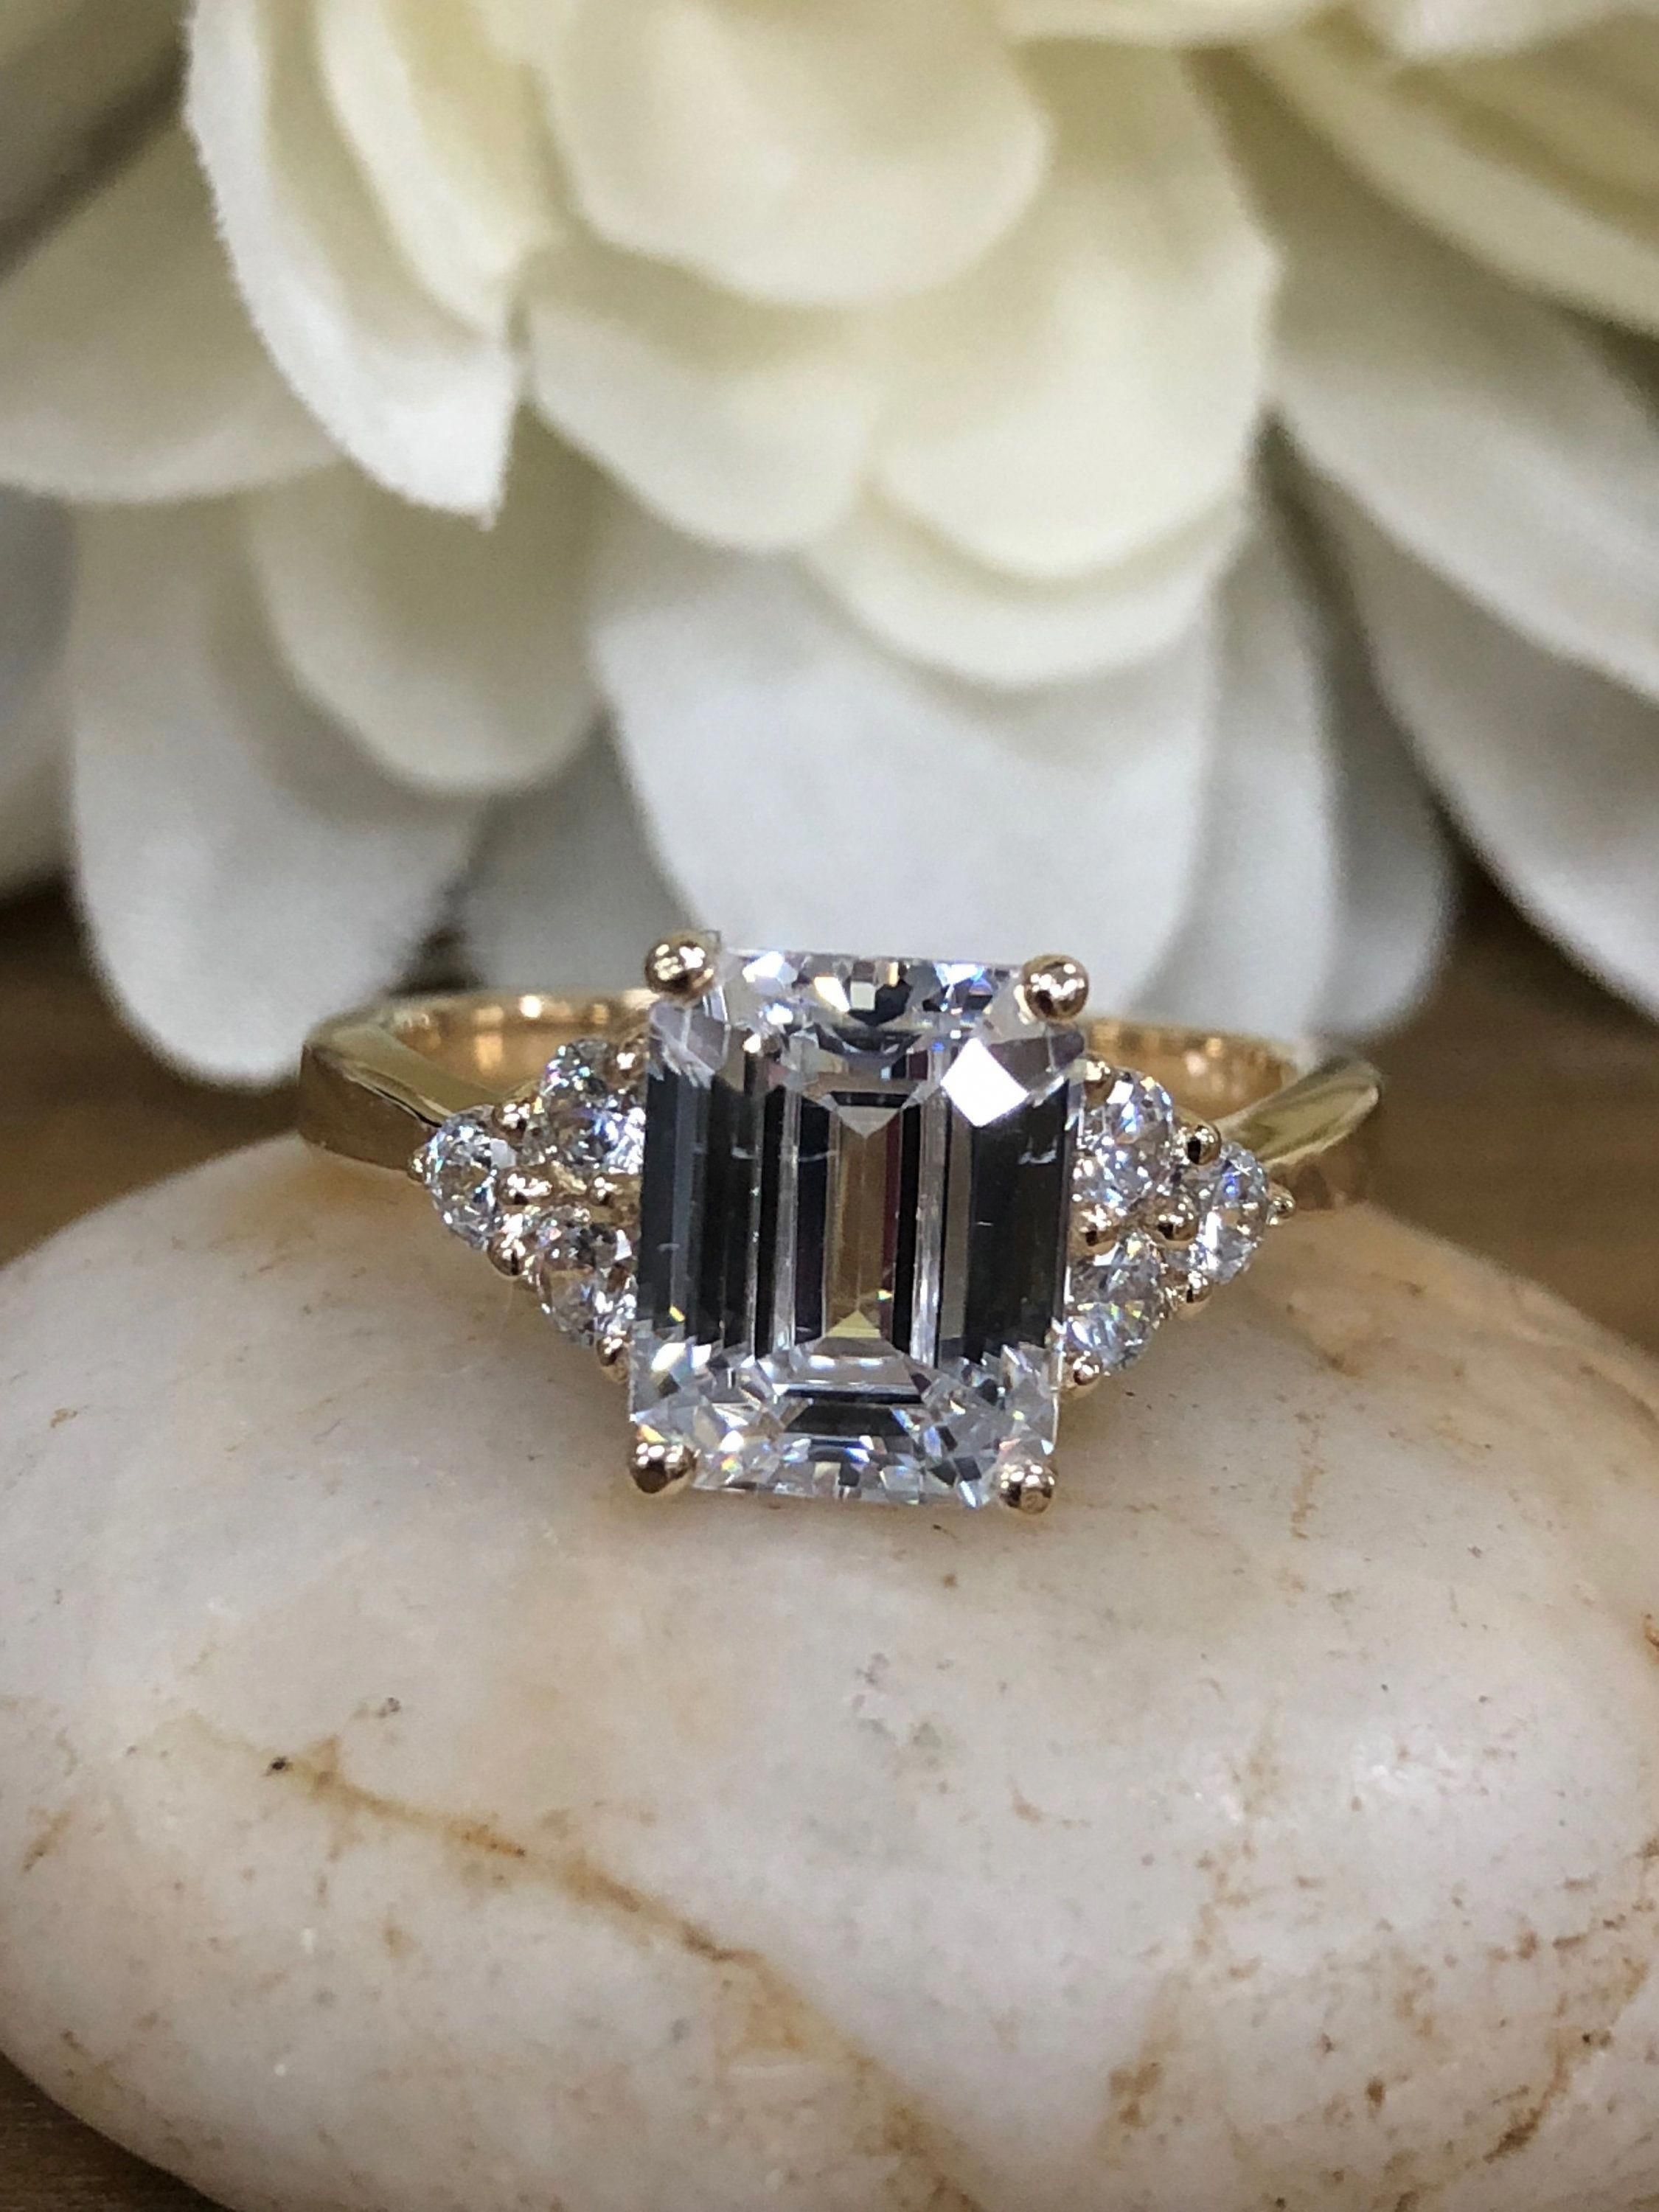 Emerald Cut Engagement Ring Engagement Ring With Round Accents 14k